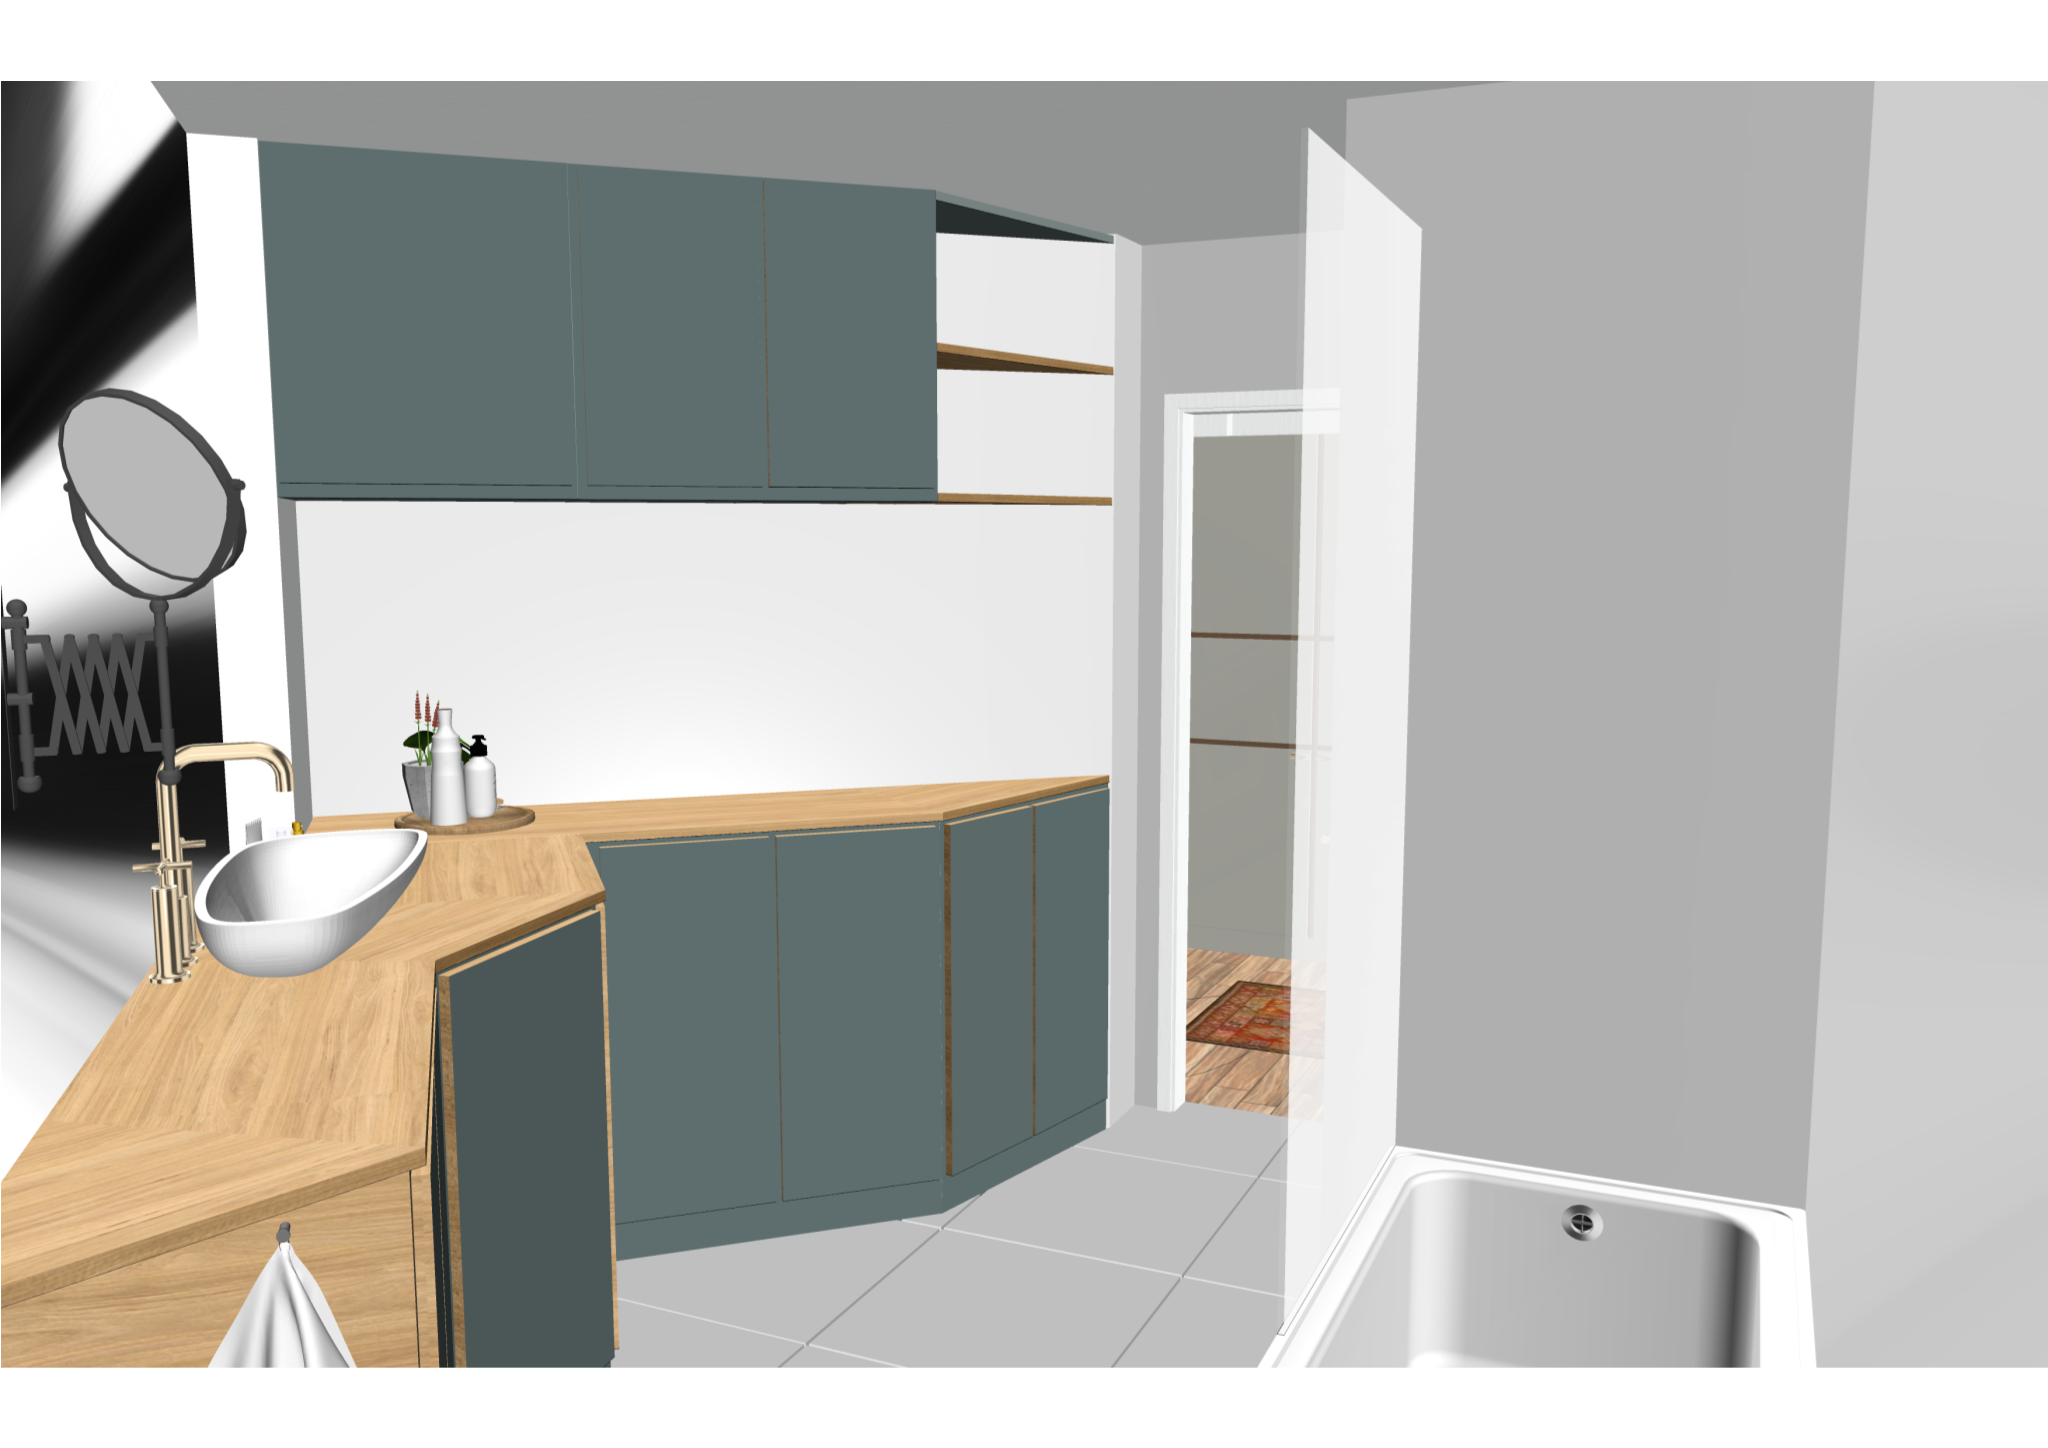 maison_bou_2019_neuilly_3d_16.png